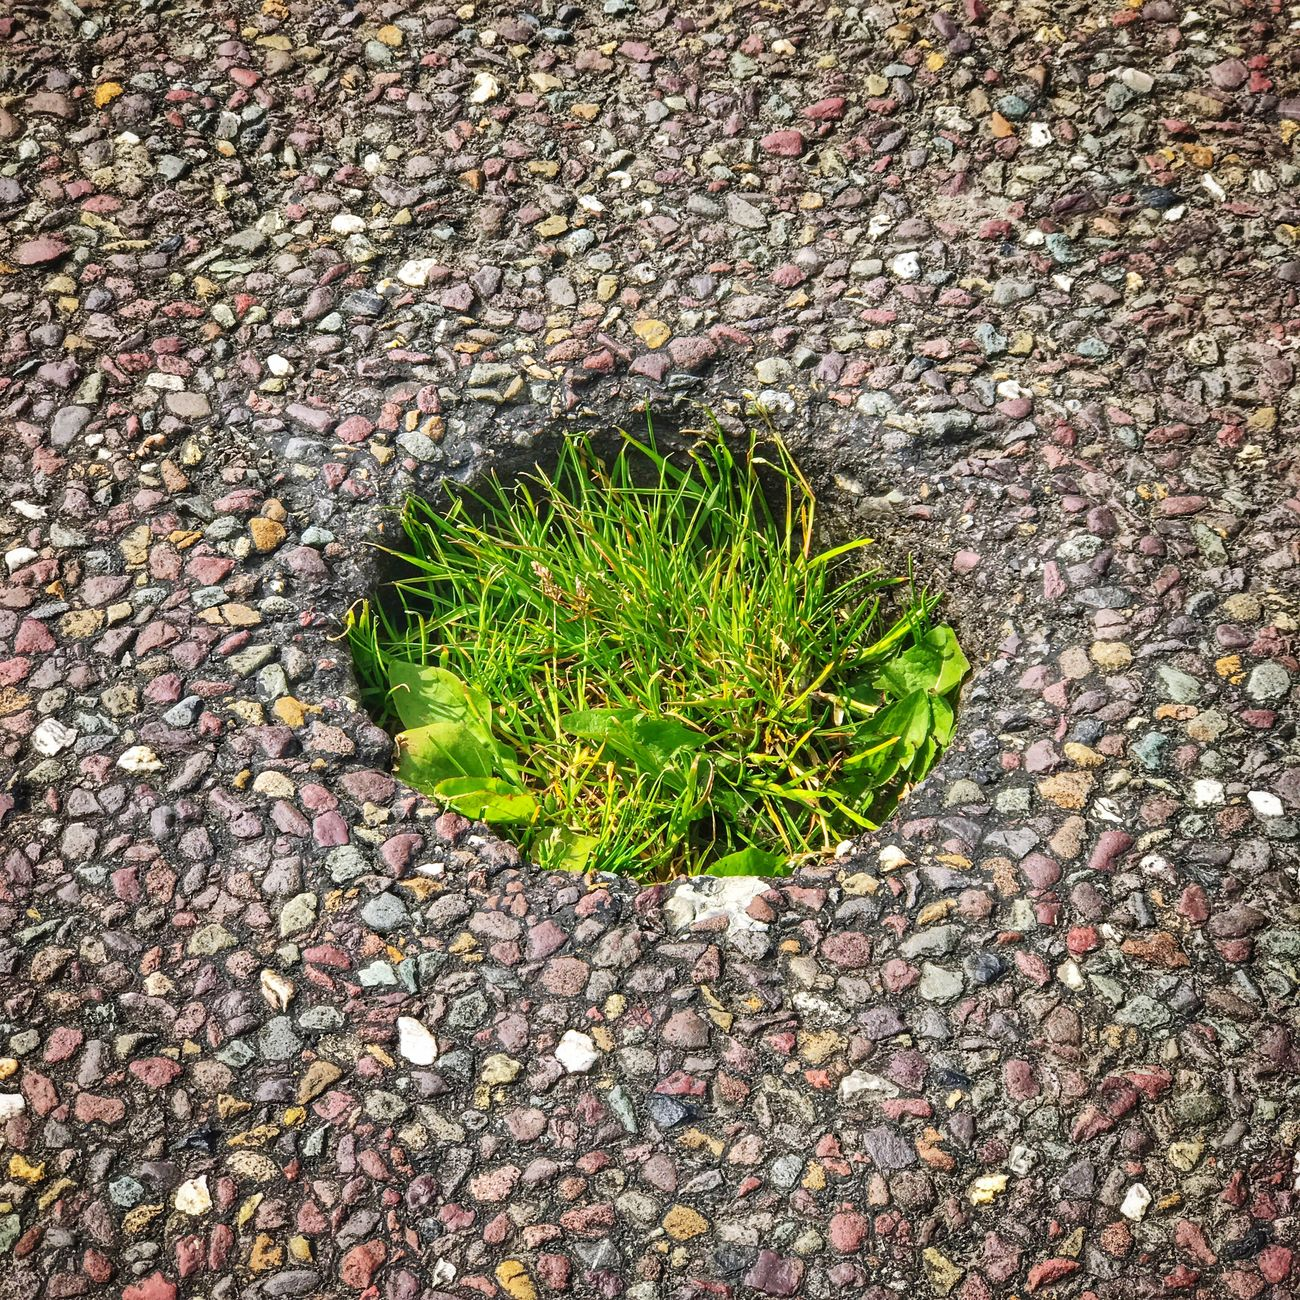 Worlds cutest most uniform pothole Nature Growth High Angle View No People Outdoors Day Plant Green Color Close-up Pothole Potholes Road Cute Uniform Ireland County Cork Cork County Council